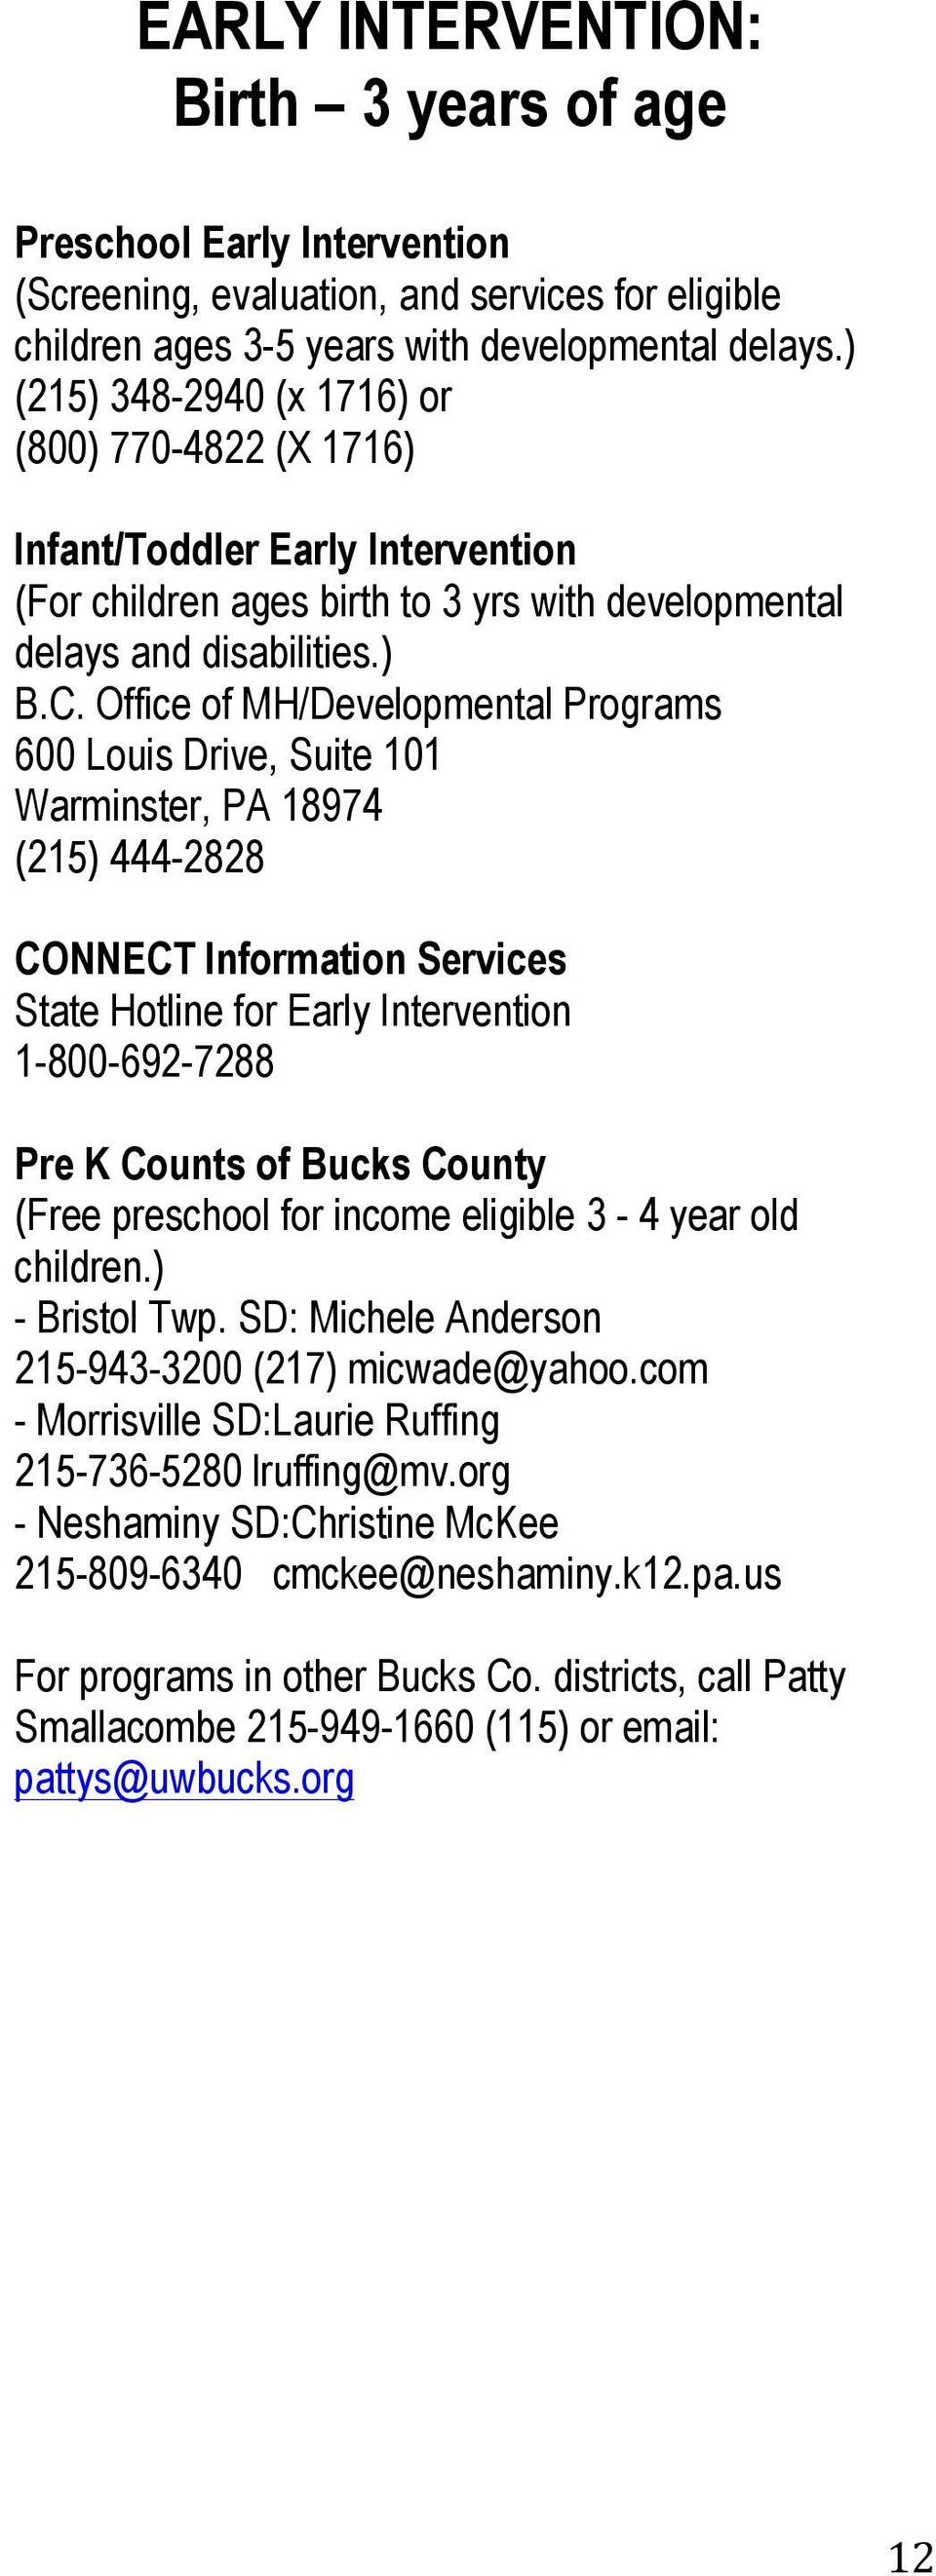 Office of MH/Developmental Programs 600 Louis Drive, Suite 101 Warminster, PA 18974 (215) 444-2828 CONNECT Information Services State Hotline for Early Intervention 1-800-692-7288 Pre K Counts of